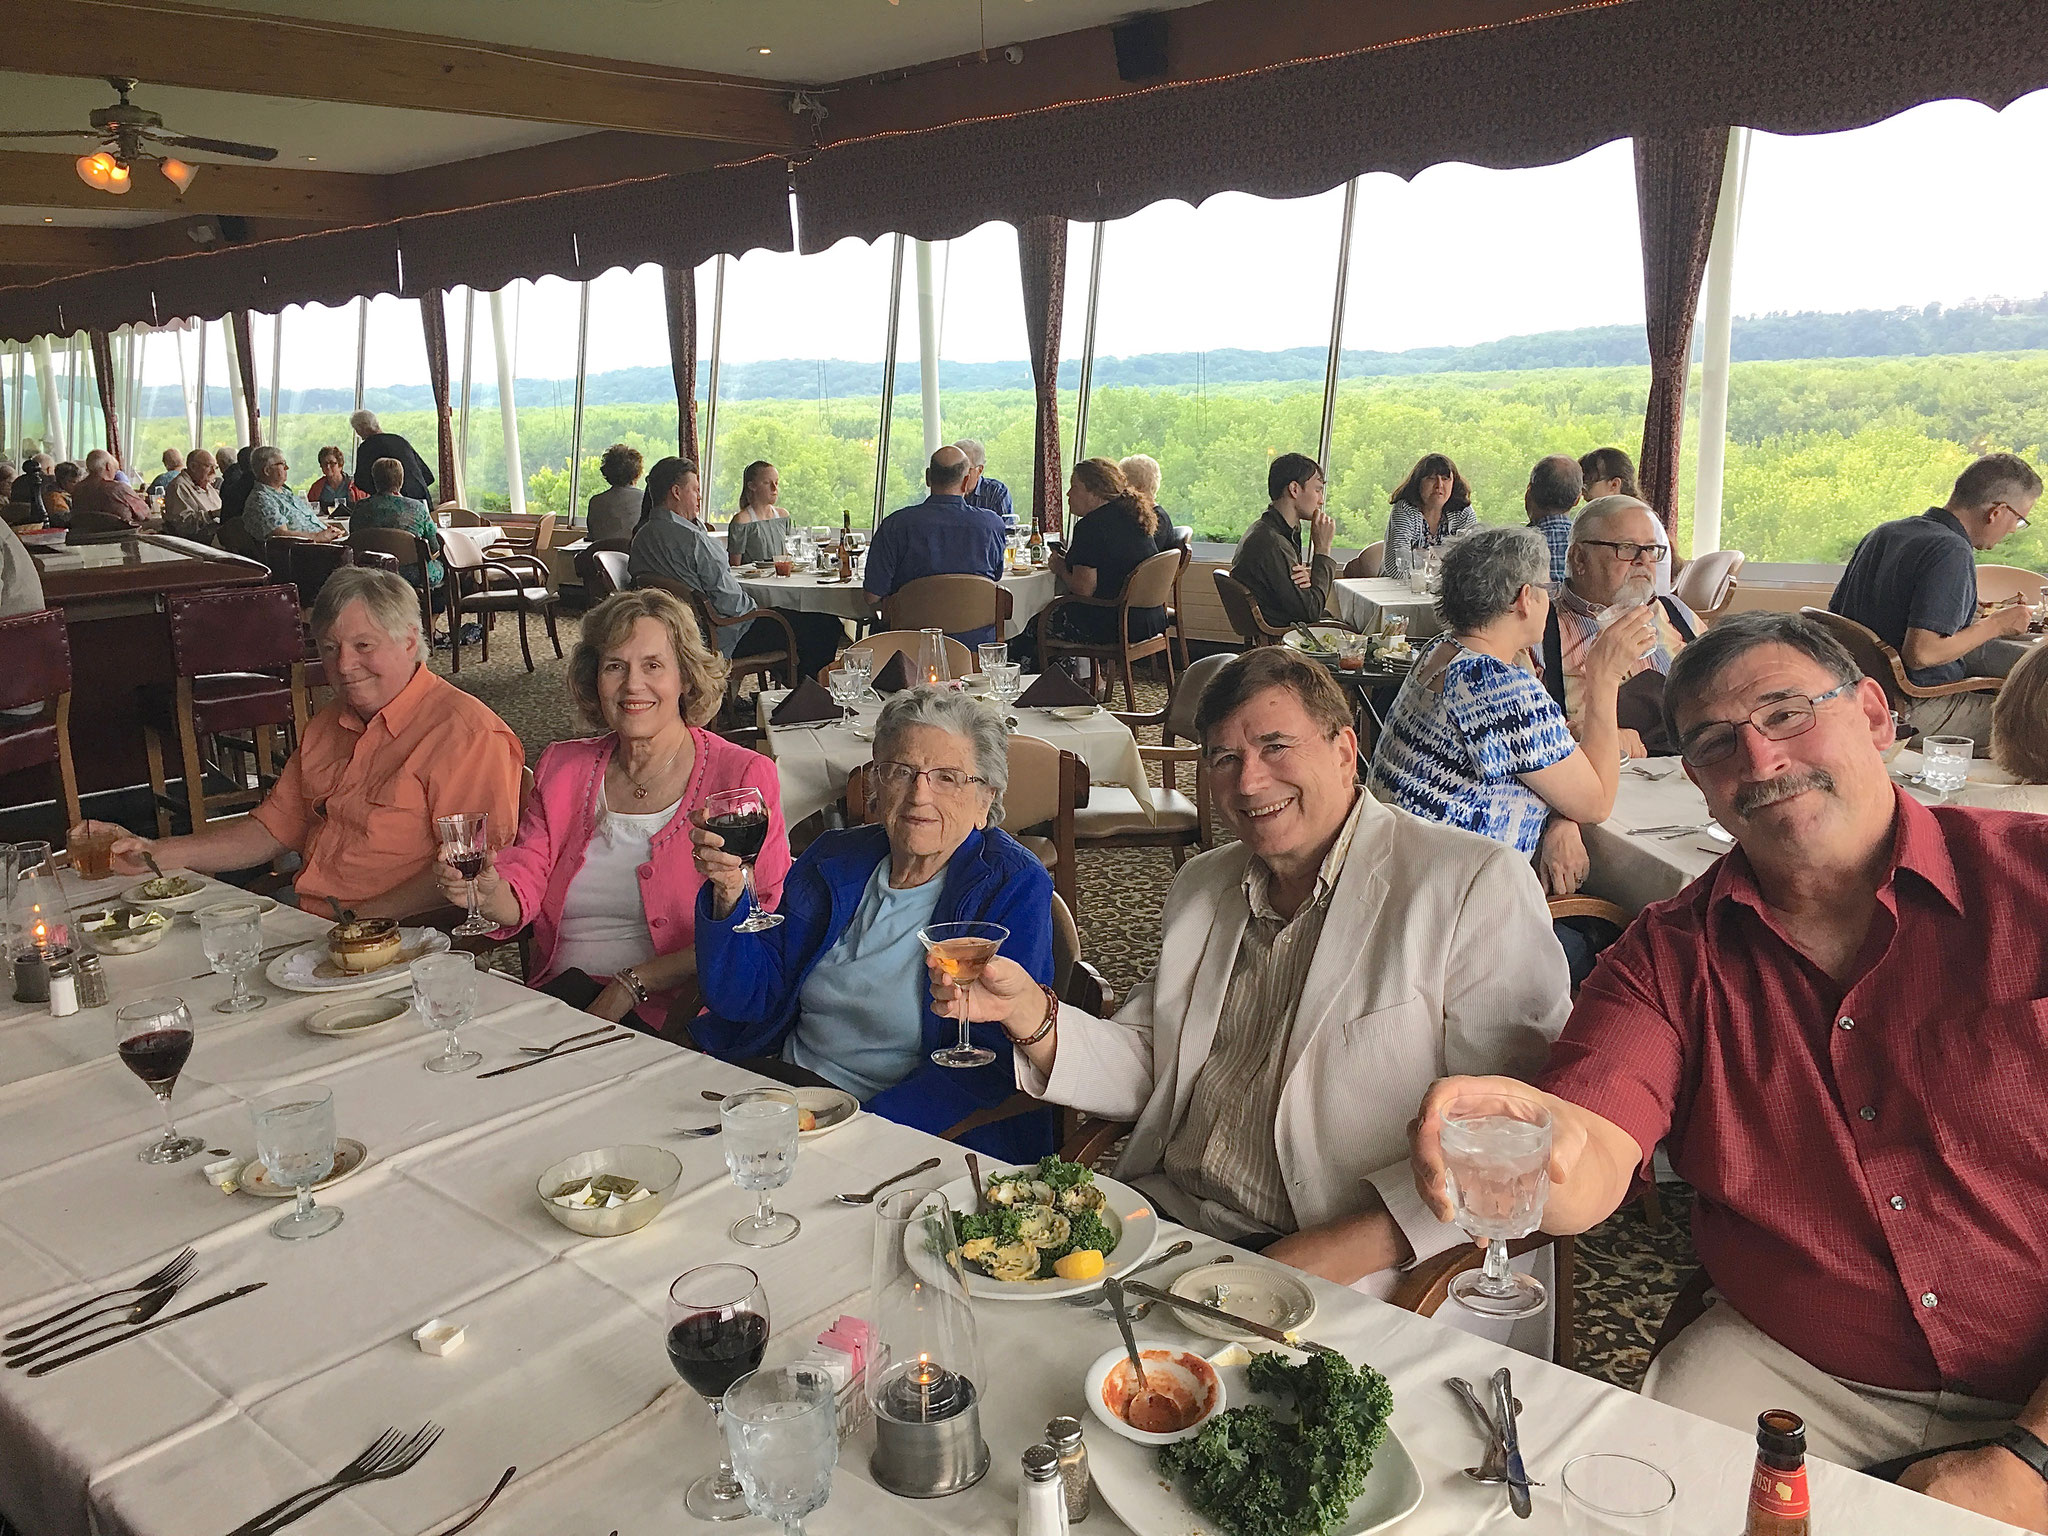 Mary Lou's 95th B'day Celebration, Timmerman's along the Mississippi River June, 2019 John A., Lorraine, Mary Lou, John Wagner, Paul Wagner